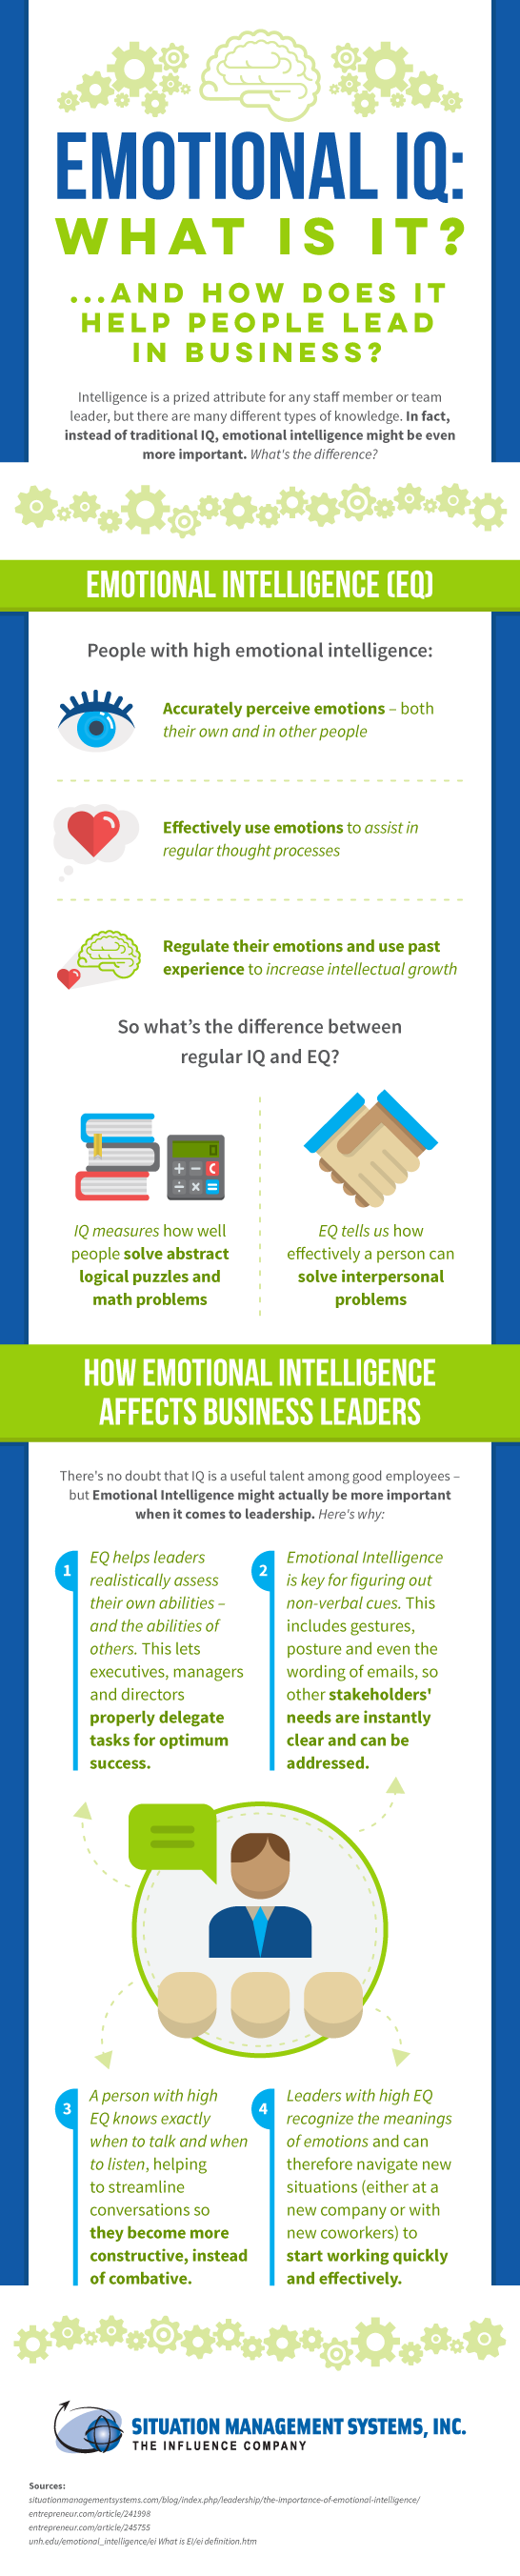 Emotional IQ: What is it?